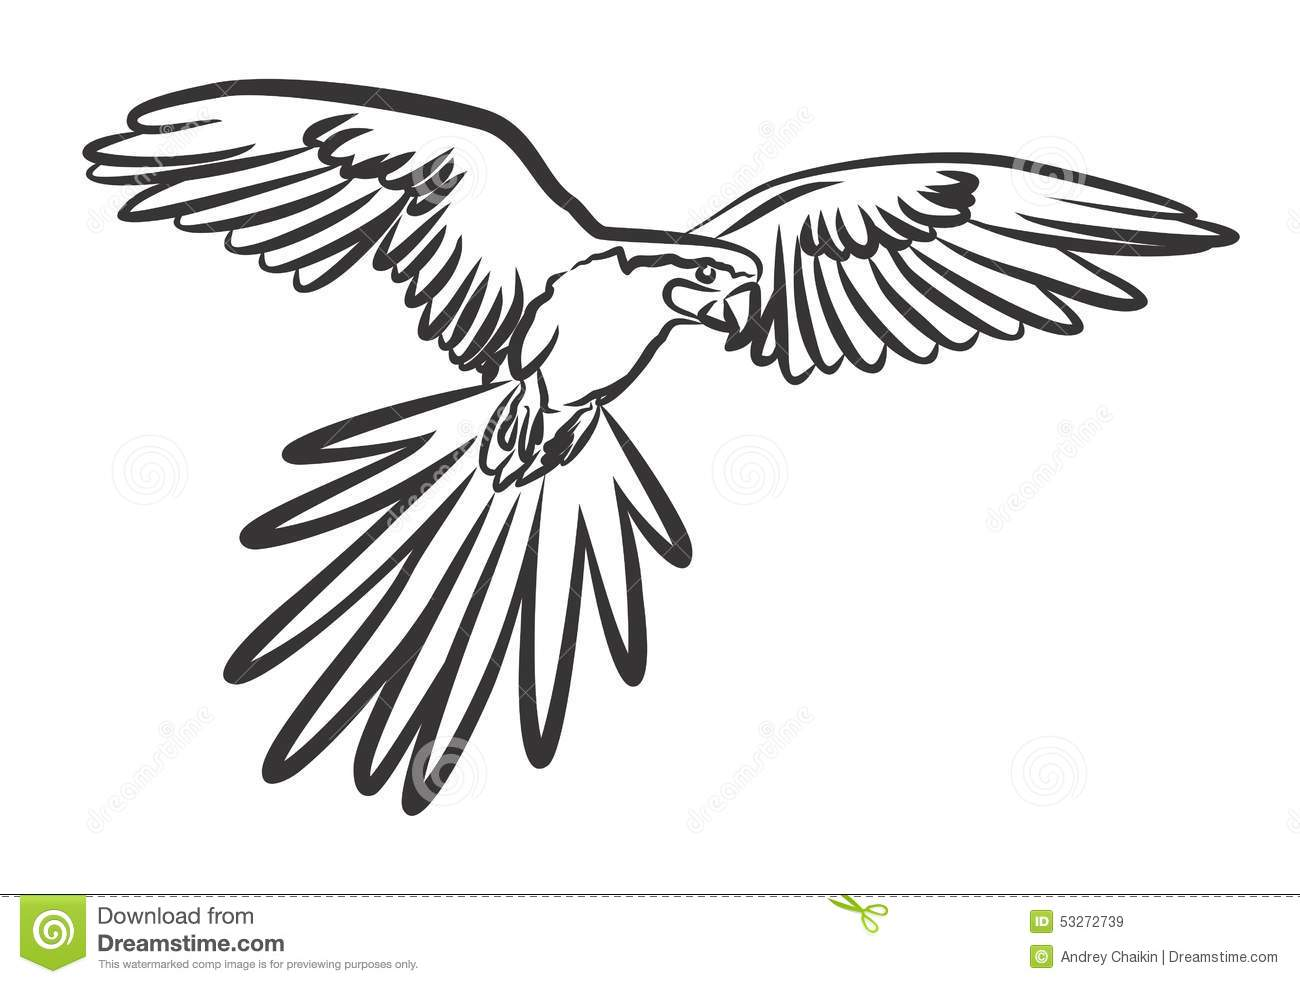 Birds Coloring Pages likewise Angry Birds Coloring Pages Pdf moreover Fabulous Floral Frenzy Embroidery Transfer Patterns additionally How To Draw A Golden Pheasant Step By Step together with Coloring Pages Online. on pheasant coloring pages